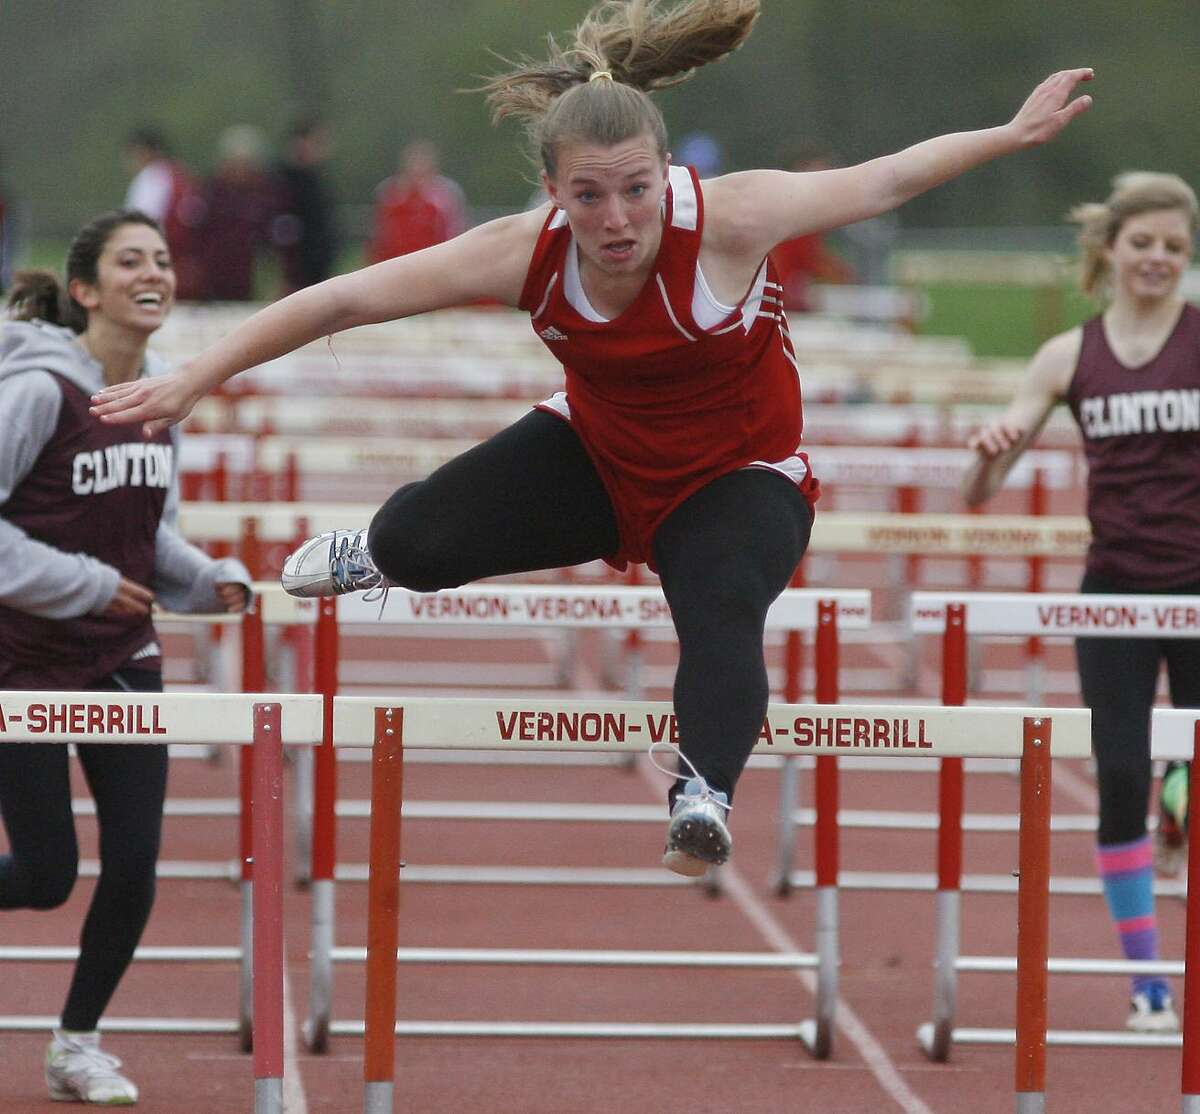 Dispatch Staff Photo by JOHN HAEGERVVS Tamara Beal clears the final hurdle for the win of the 100 High hurdles on Wednesday, May 4, 2011 at VVS in a meet against Clinton.